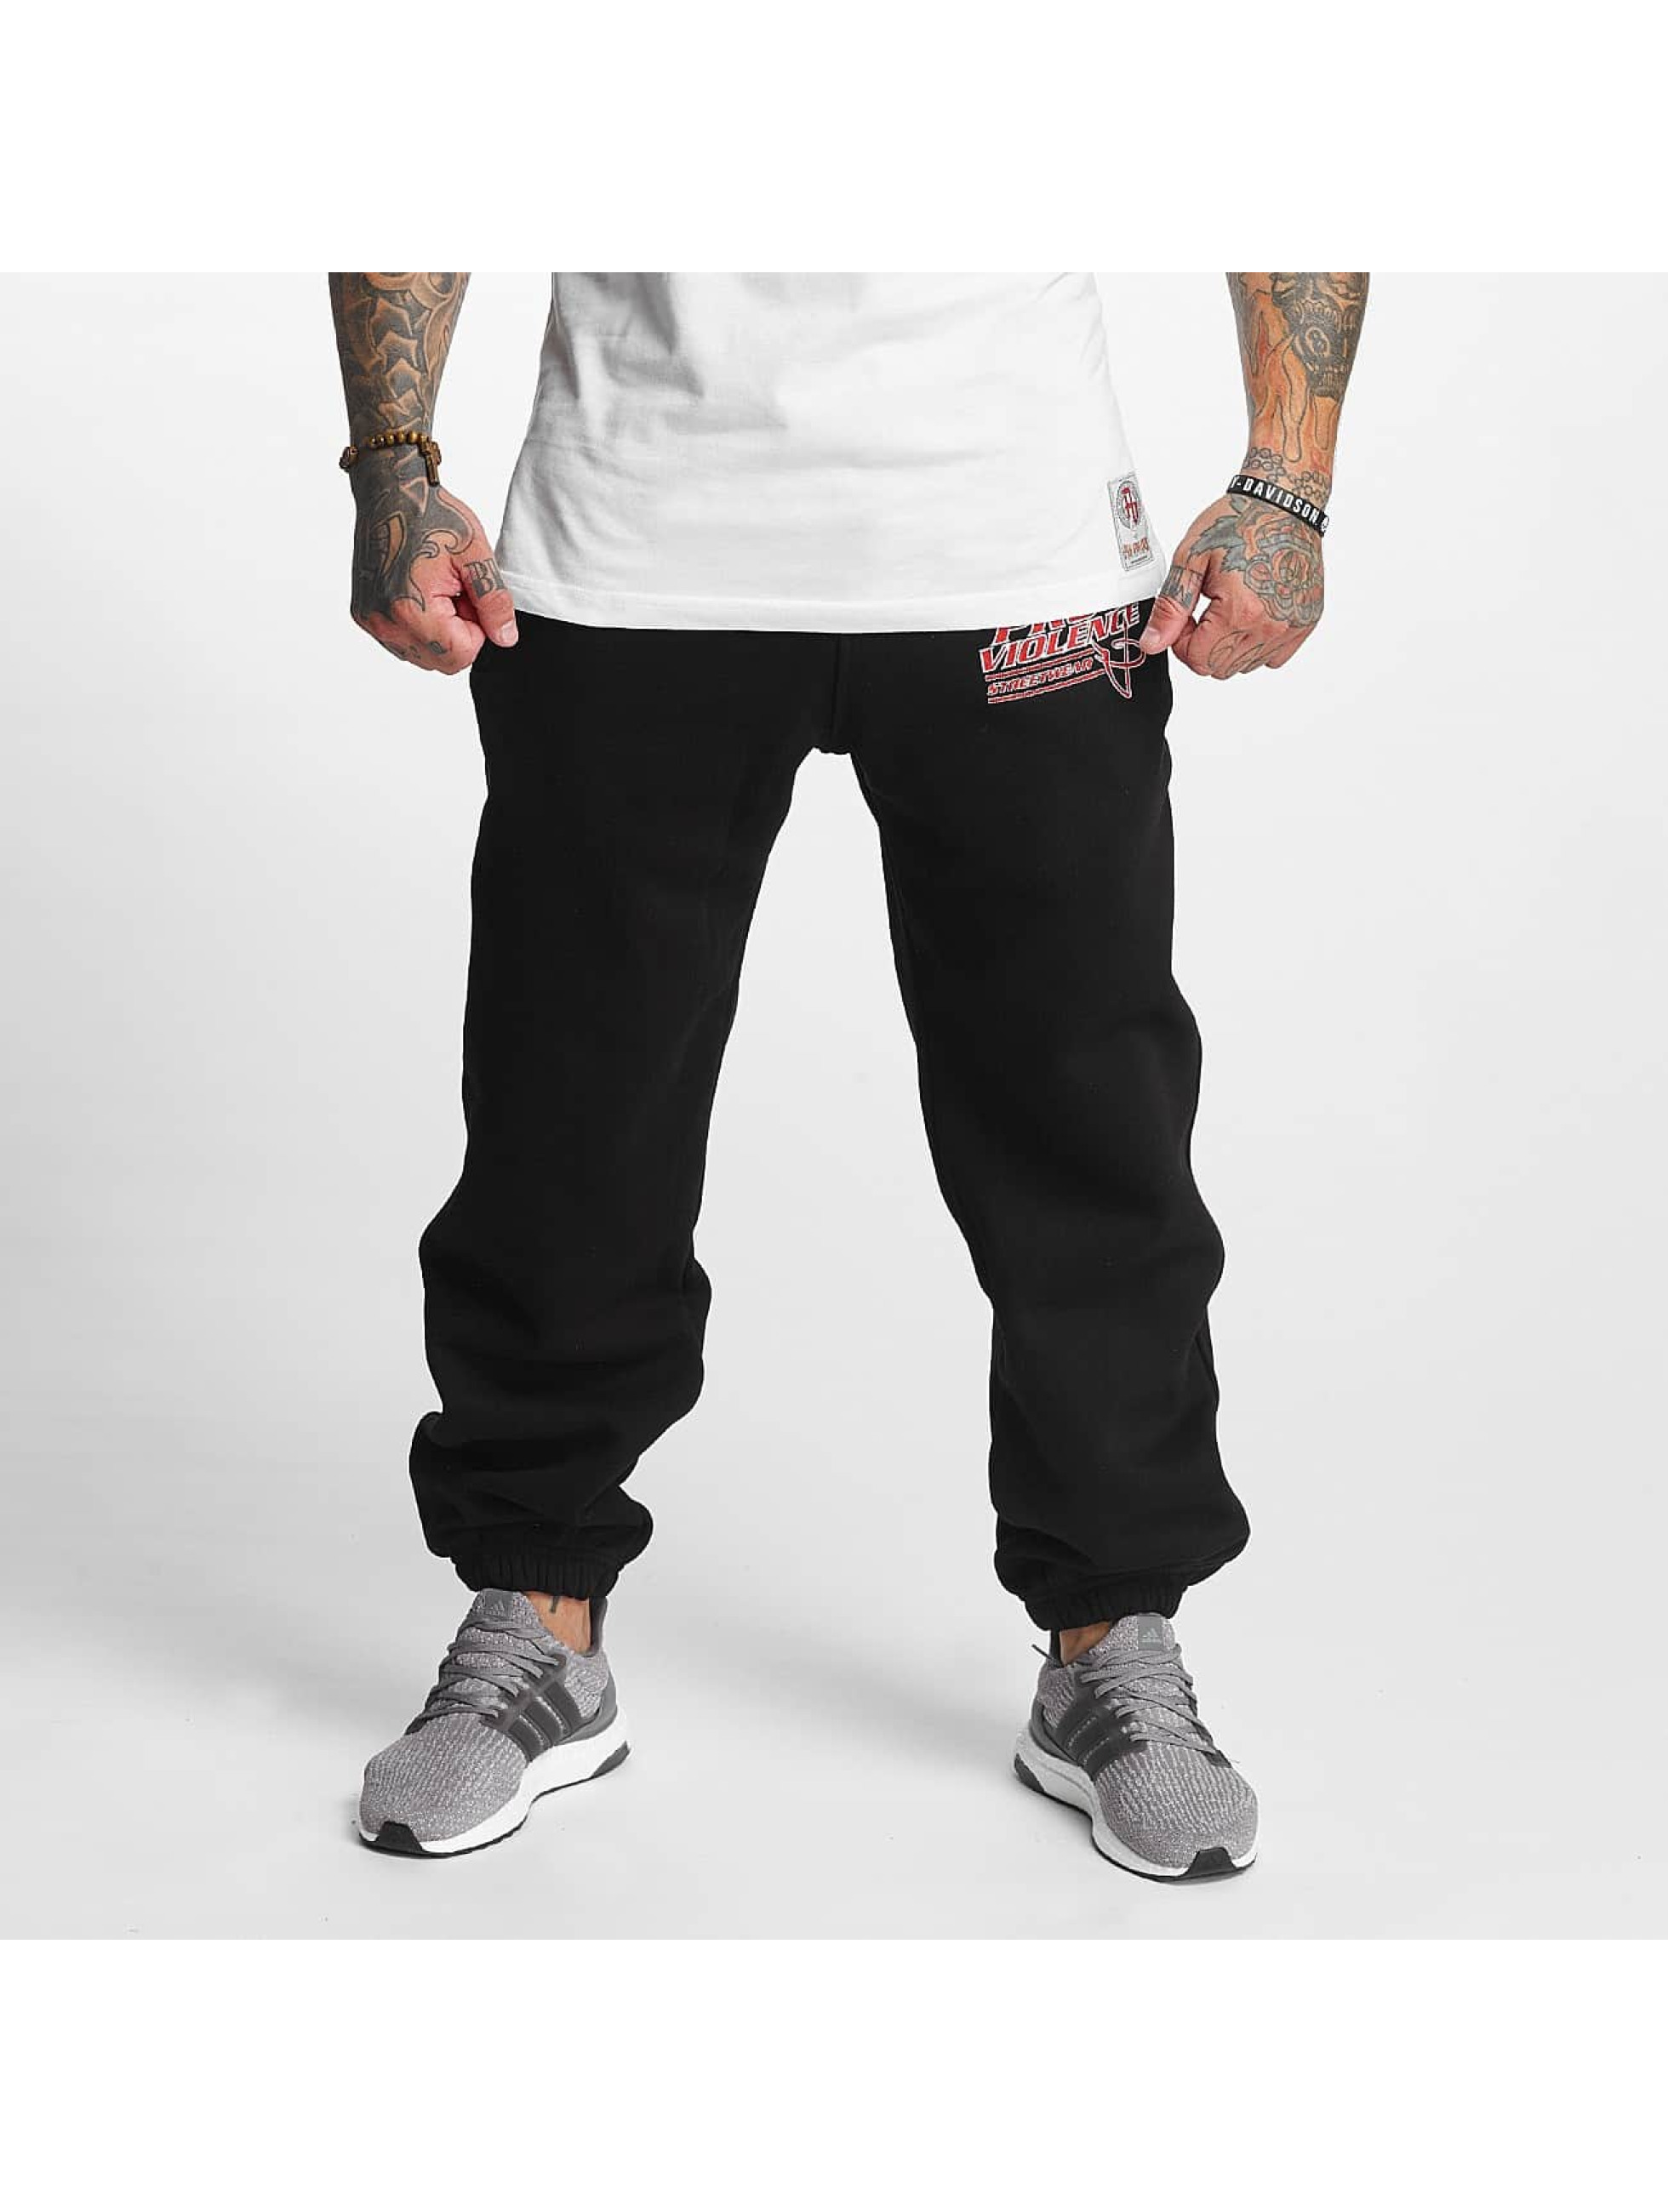 Pro Violence Streetwear Sweat Pant Label No. 1 black